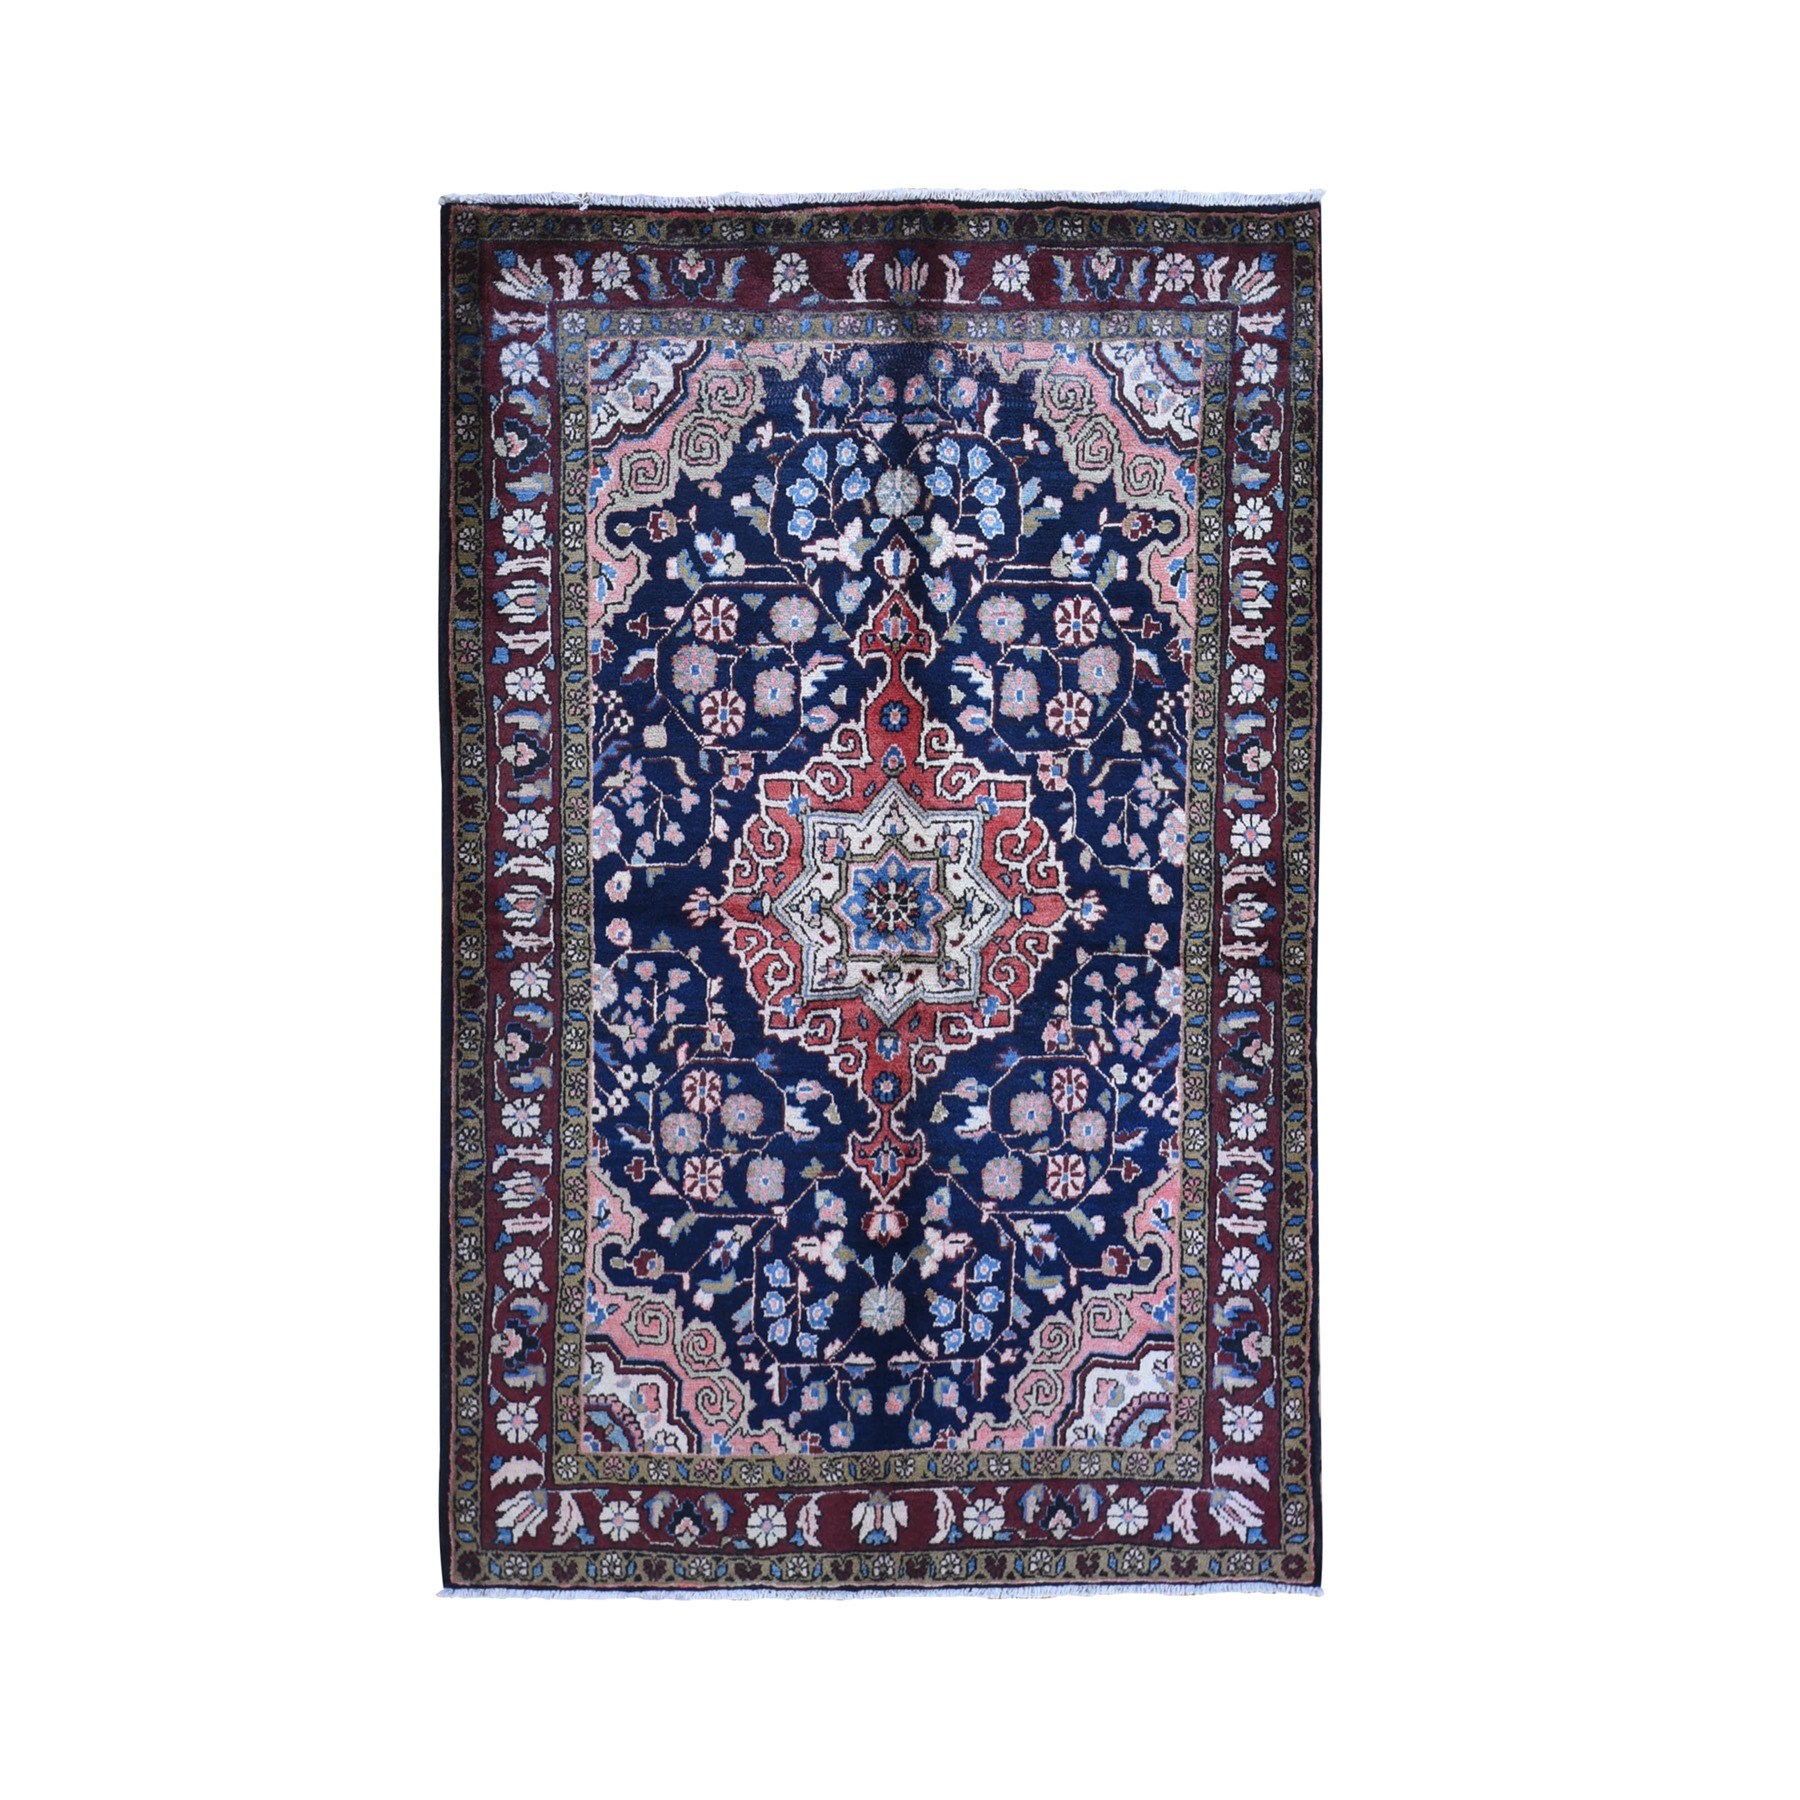 "4'10""x7'7"" Vintage Persian Hamadan Navy Blue Center Medallion Natural Wool Hand Knotted Oriental Rug"